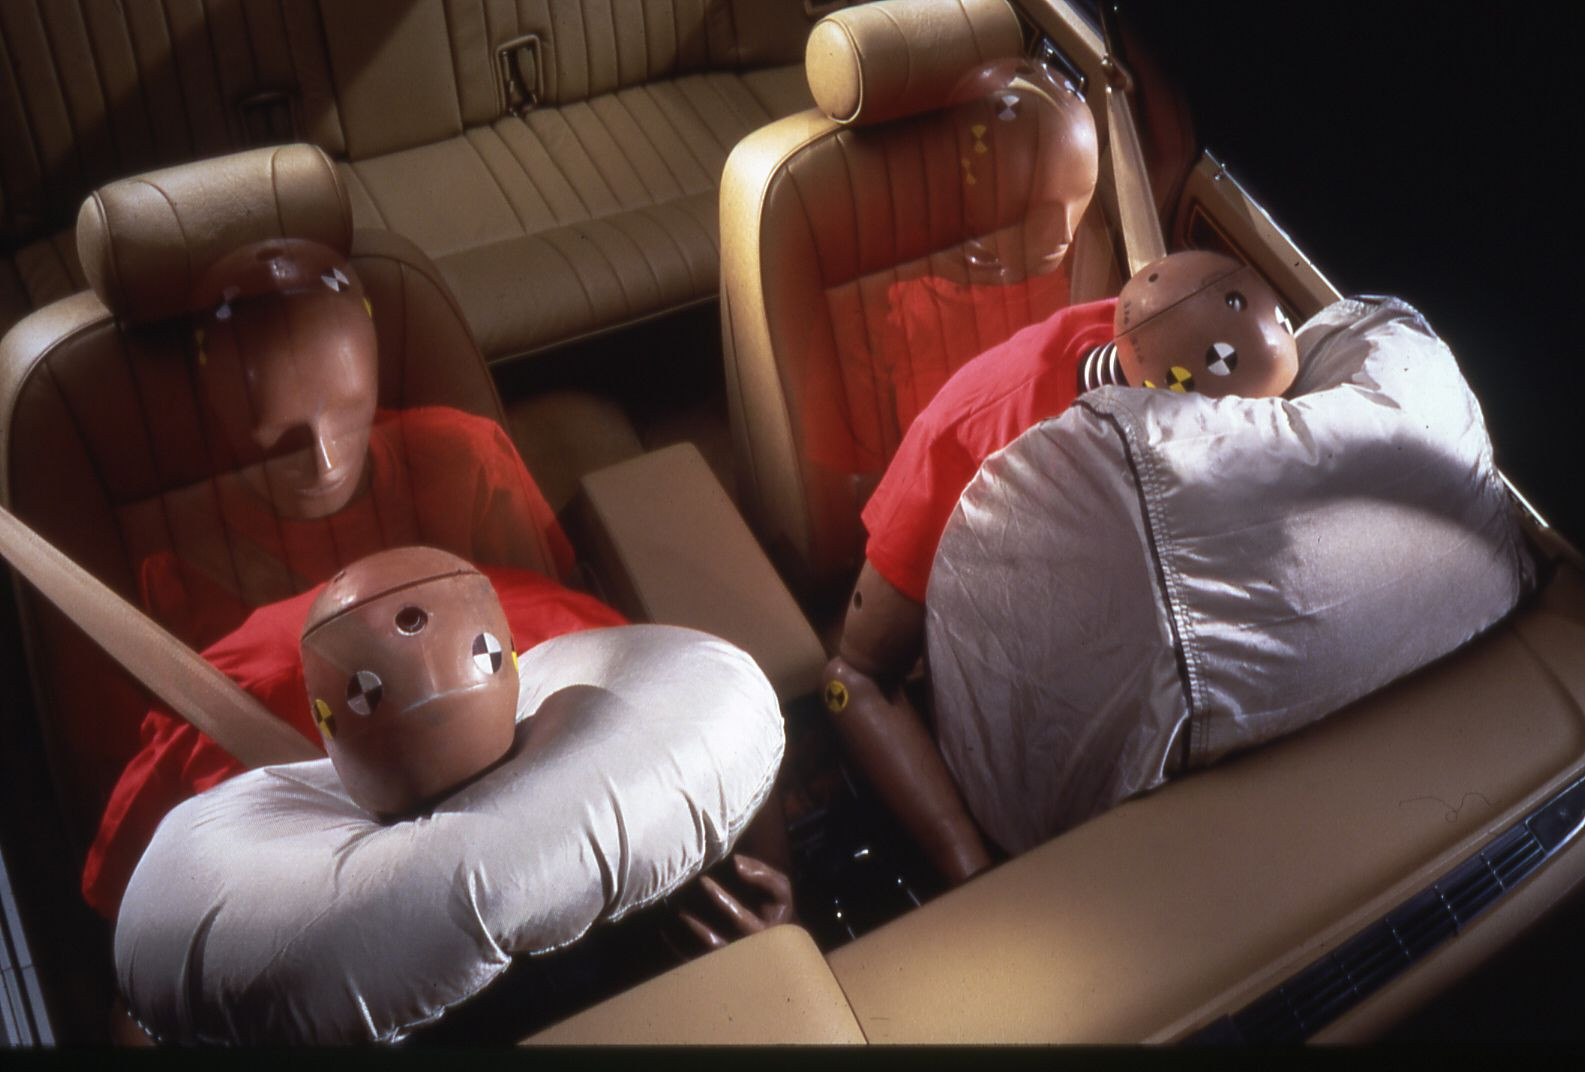 Crash test dummies showing how forceful an airbag going off into a baby seat can be